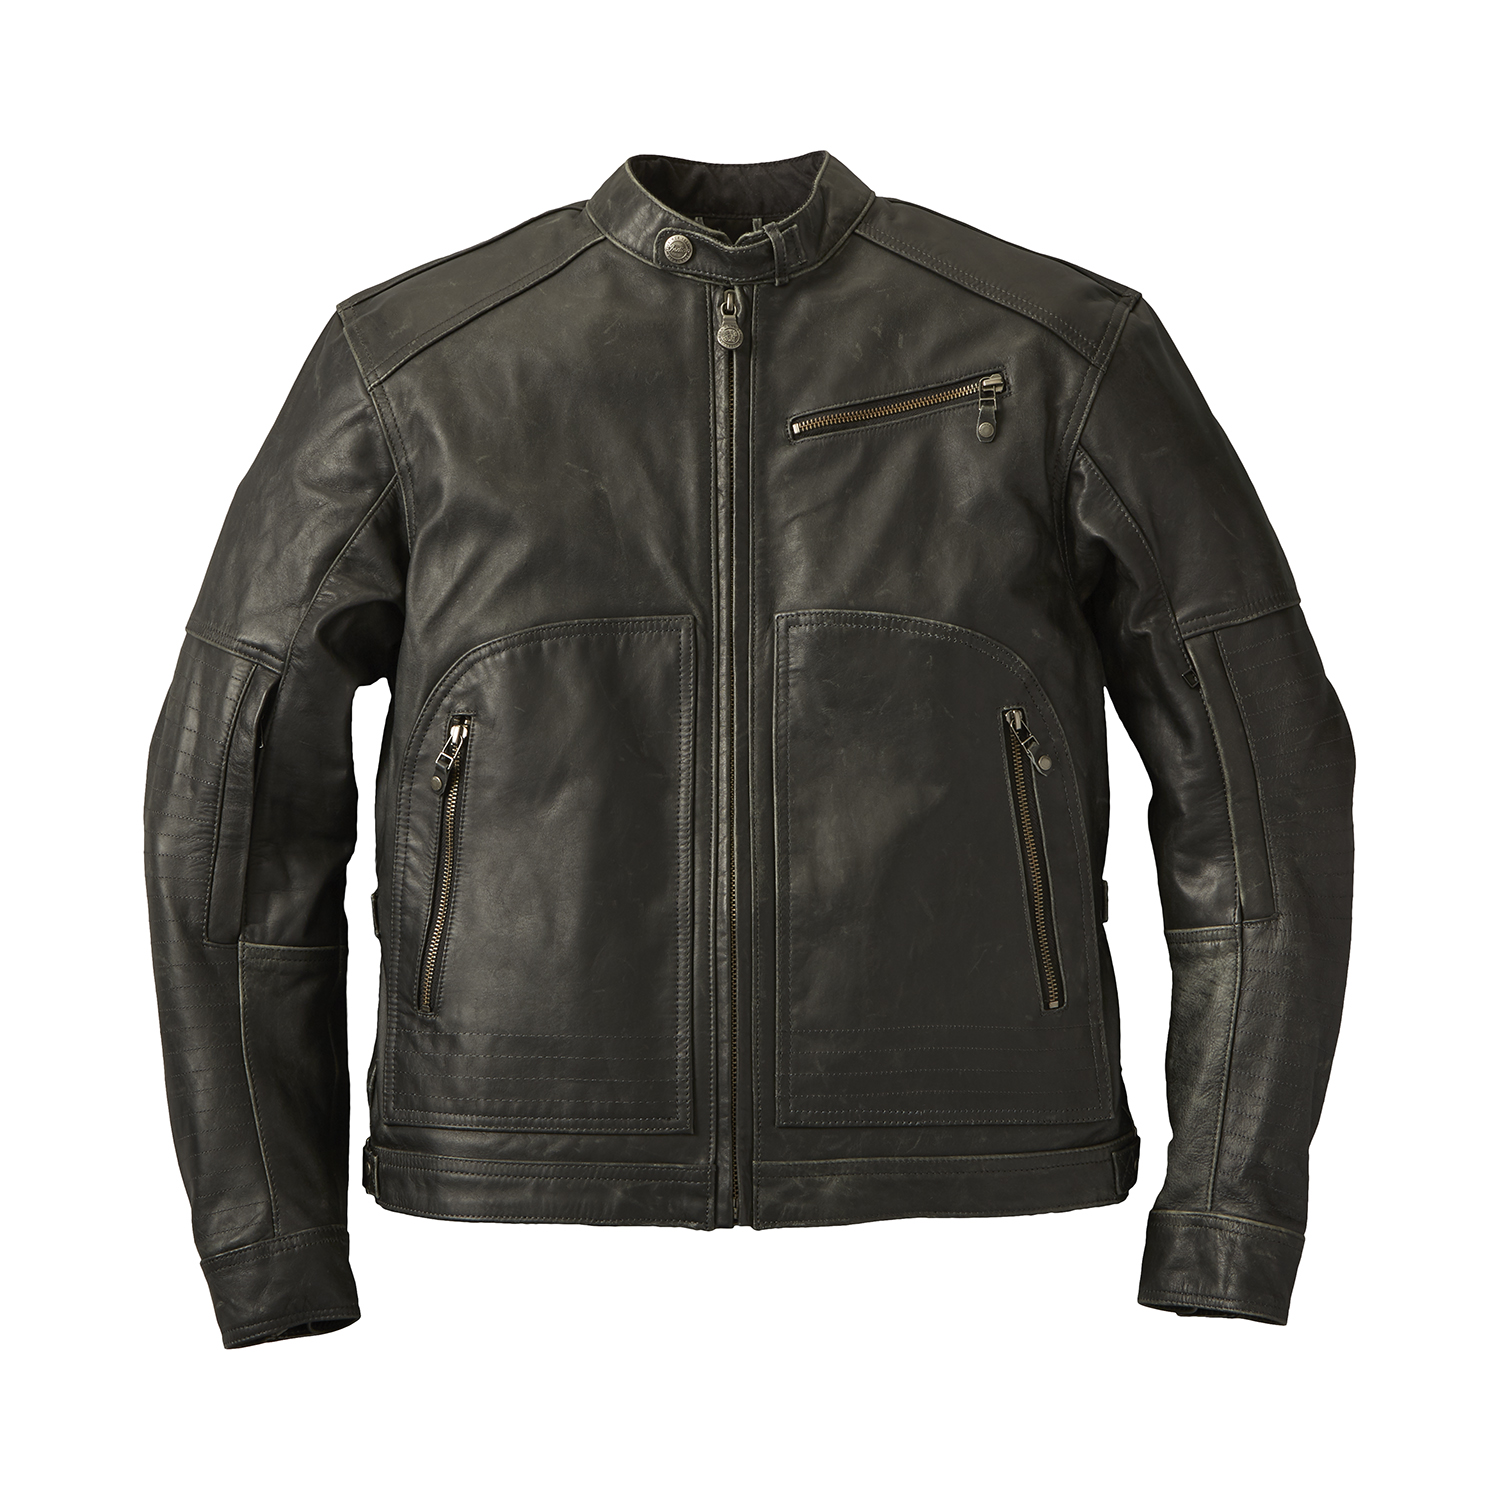 Men's Leather Phoenix Riding Jacket with Removable Lining, Black